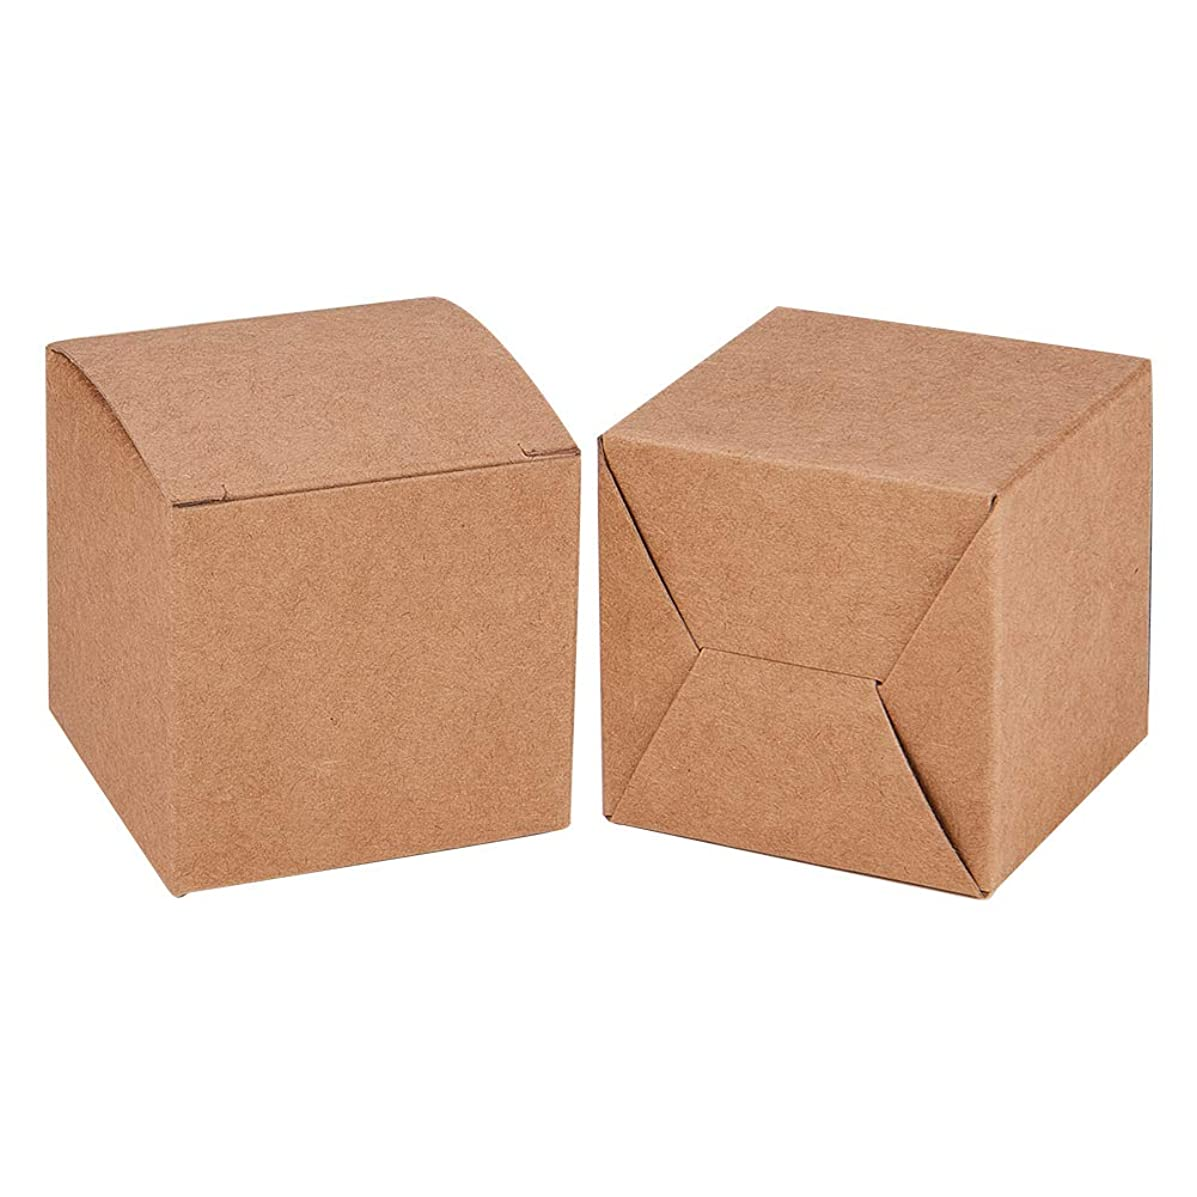 BENECREAT 50PCS Gift Boxes Brown Paper Boxes Party Favor Boxes 2 x 2 x 2 Inches with Lids for for Gift Wrapping, Wedding Party Favors